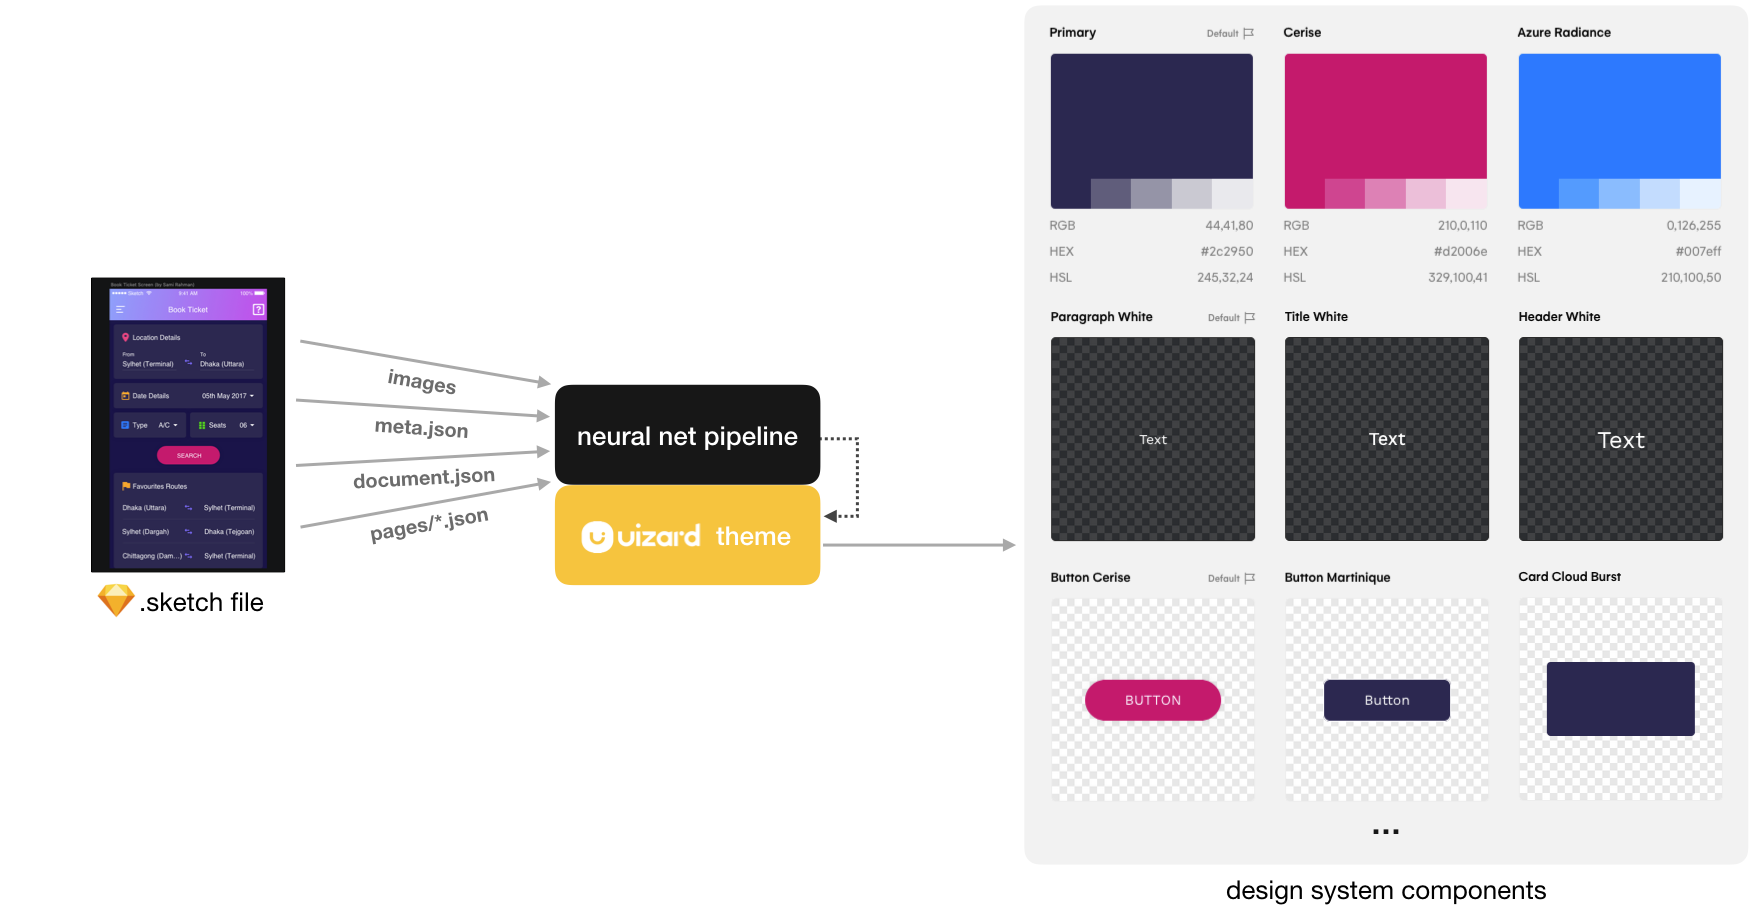 Uizard product: generating design system components from a Sketch file.